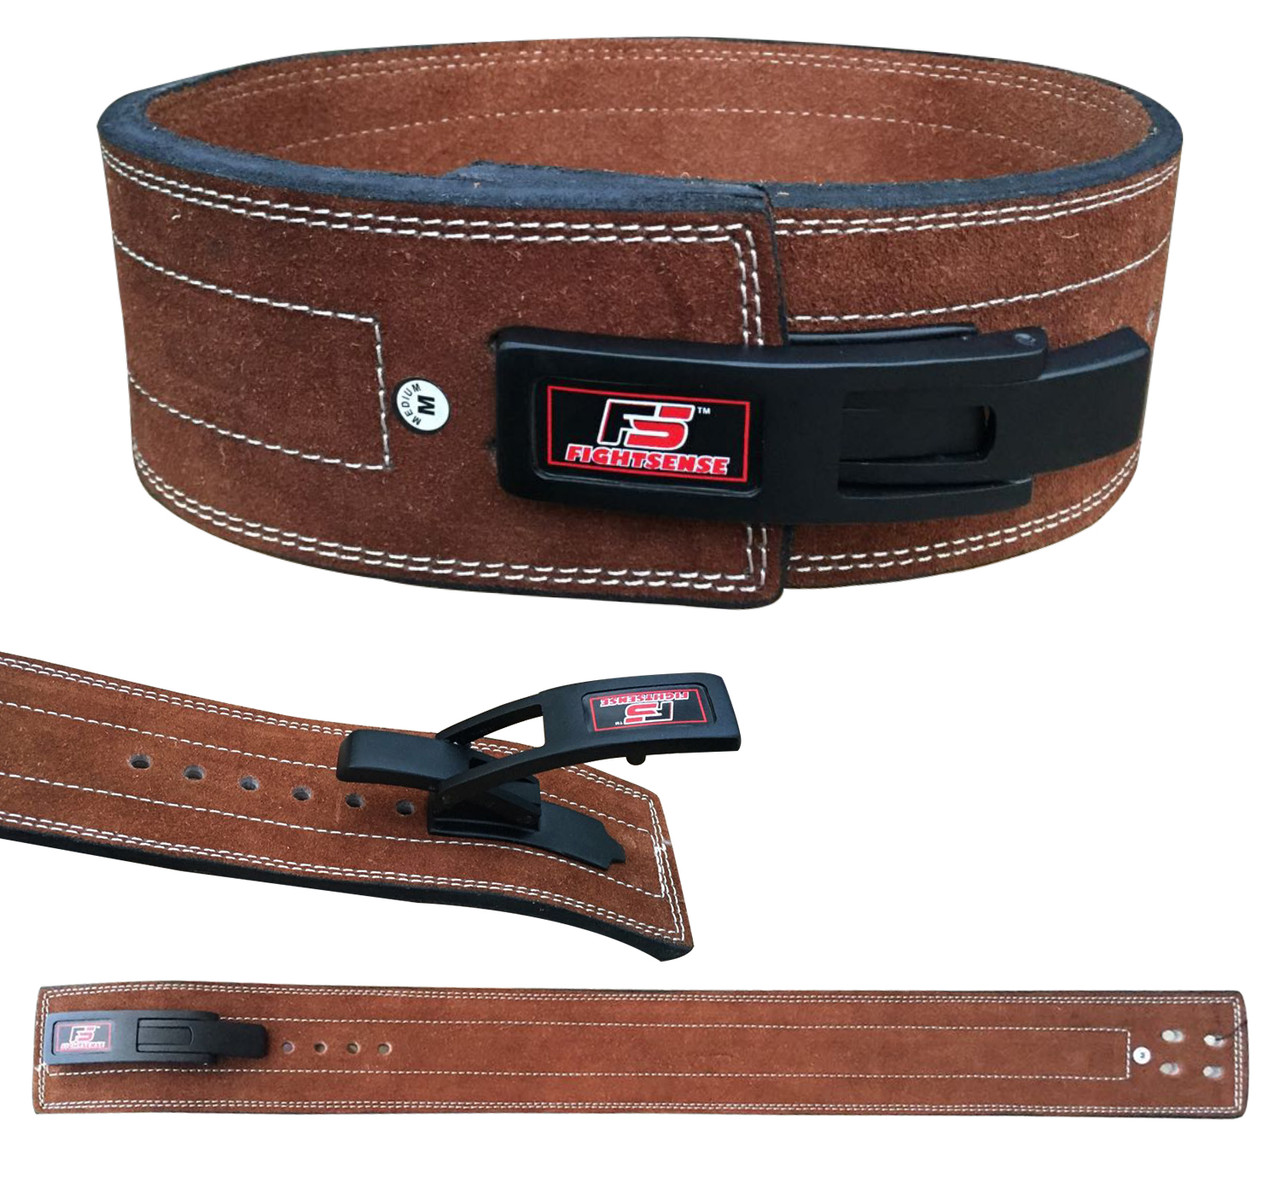 LEATHER LIFTING BELT 4 MED training gym fitness powerlifting bodybuilding NEW